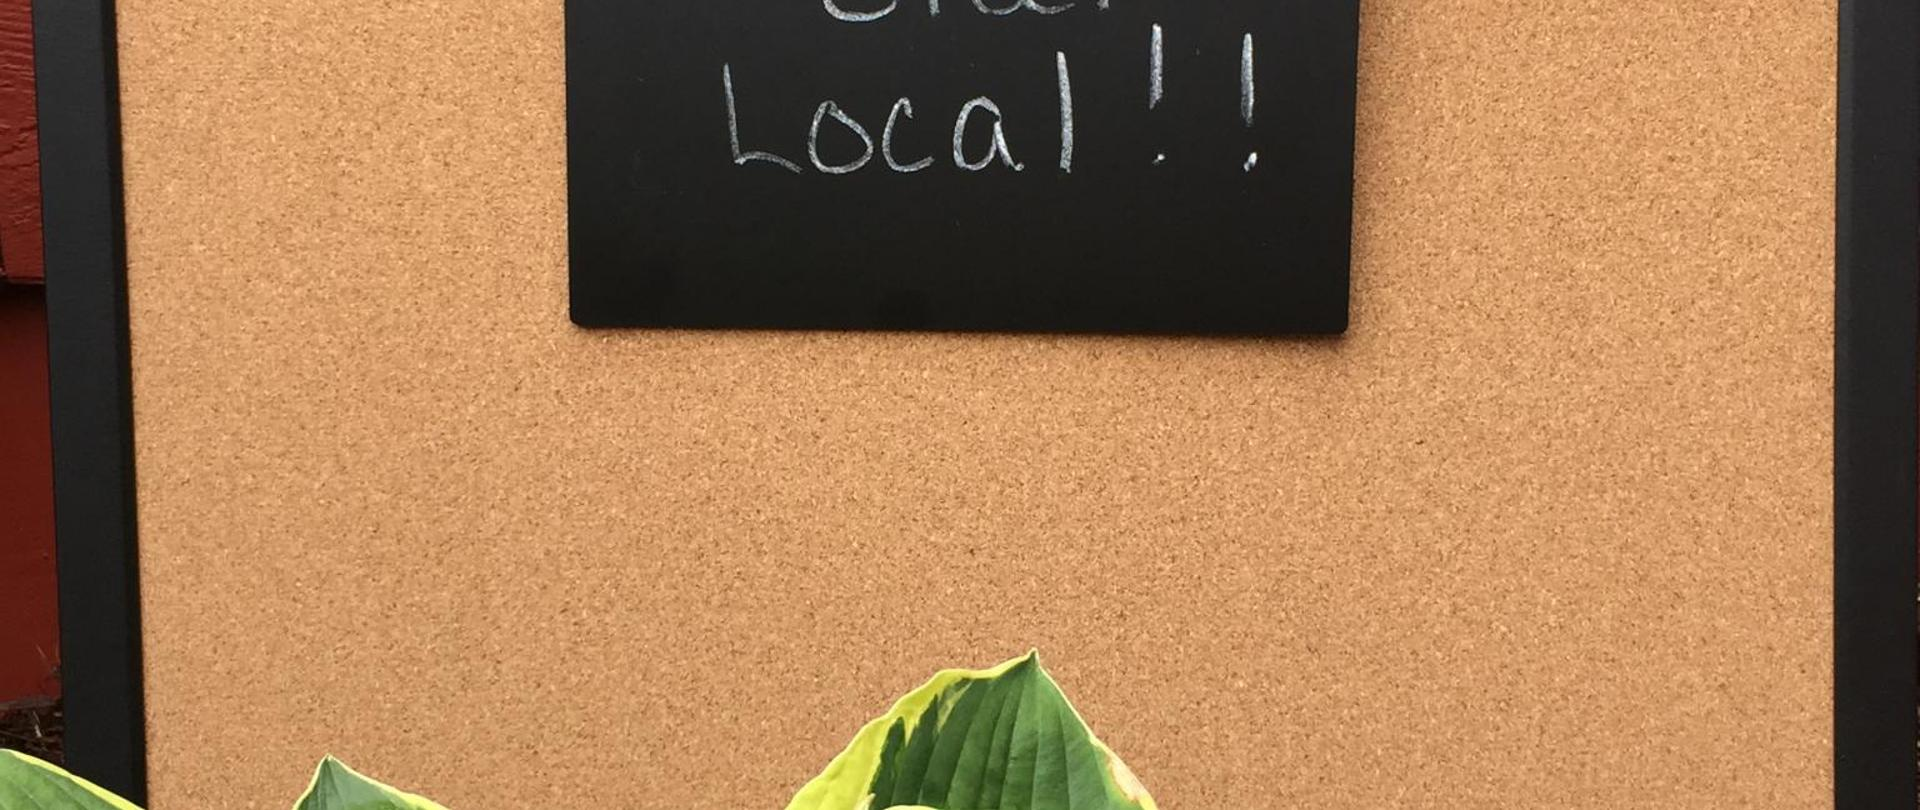 think local sign.jpg